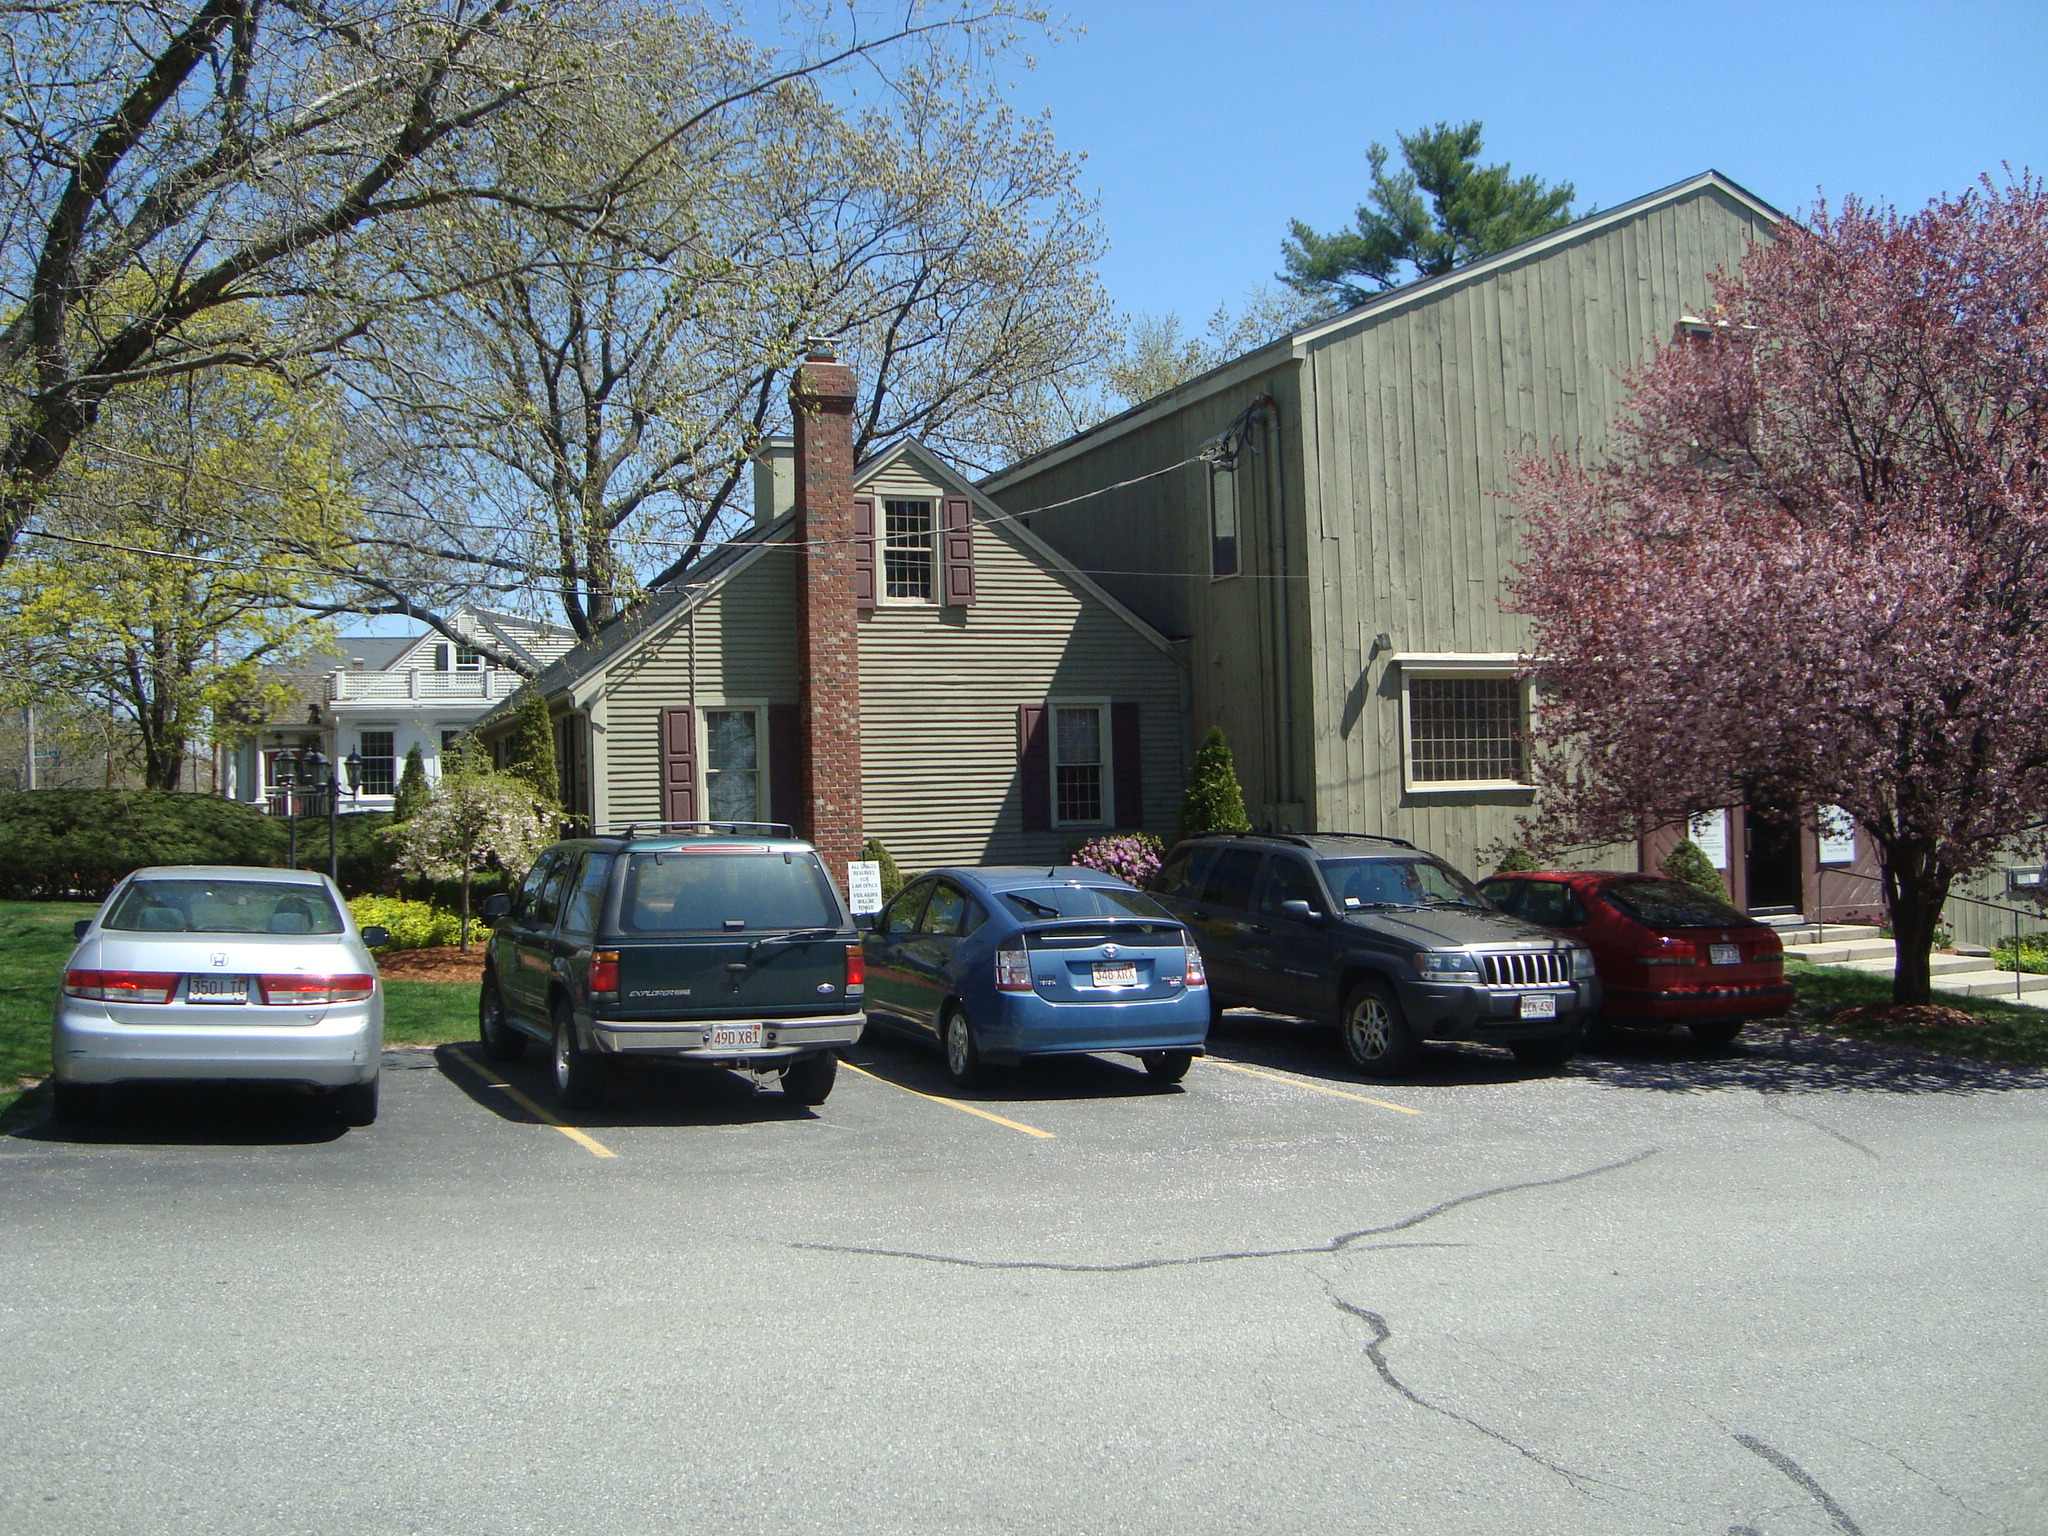 Commercial Property For Lease In Westford Ma